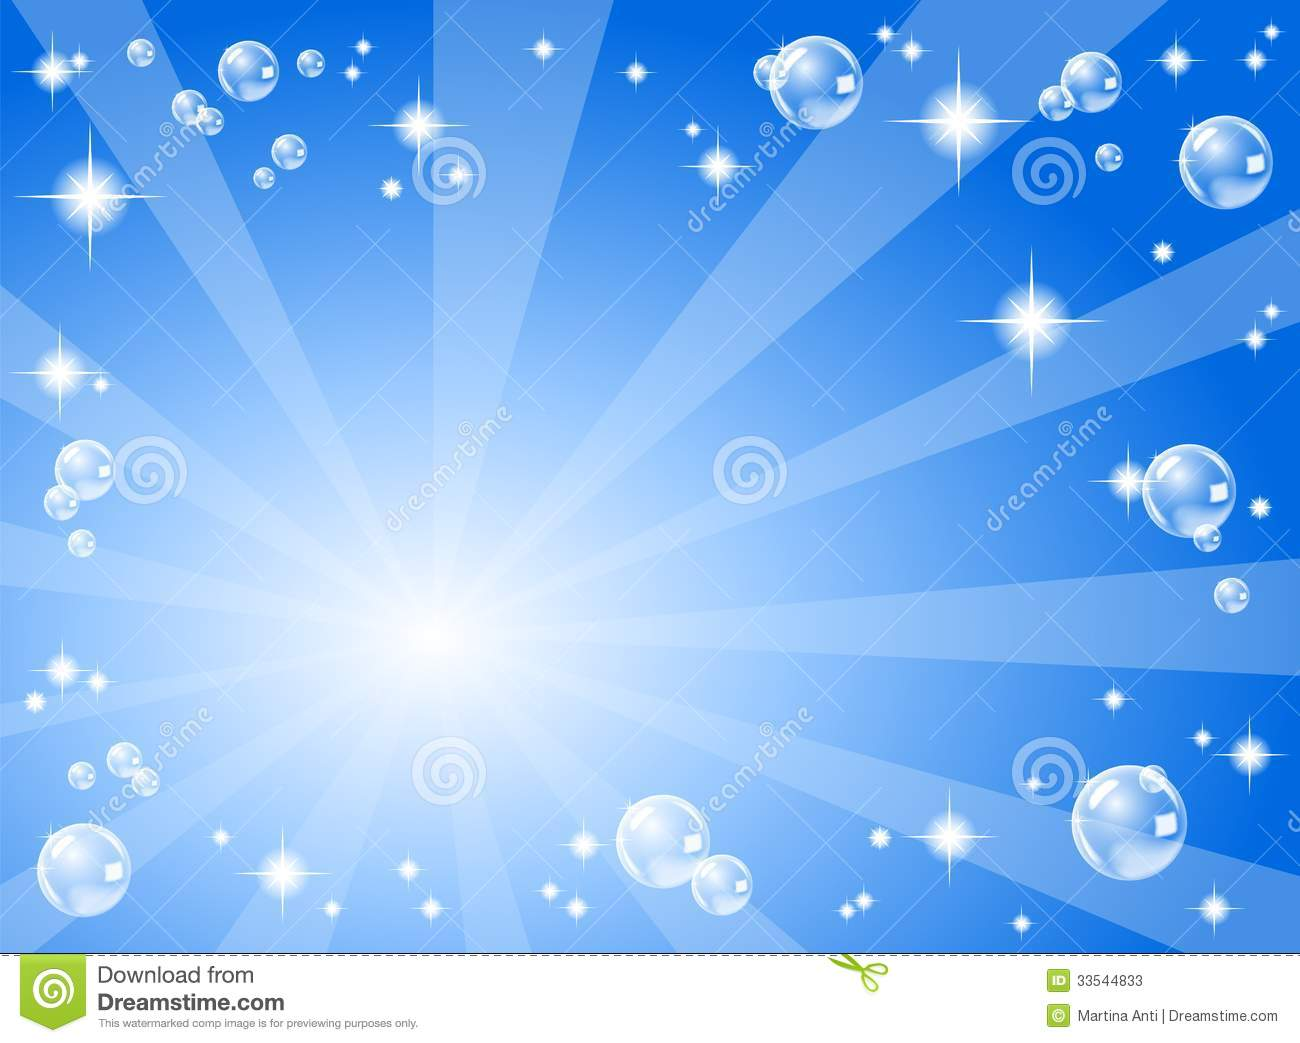 Audio Car Wallpaper Download Stars And Soap Bubbles In Front Of A Blue Backgrou Stock